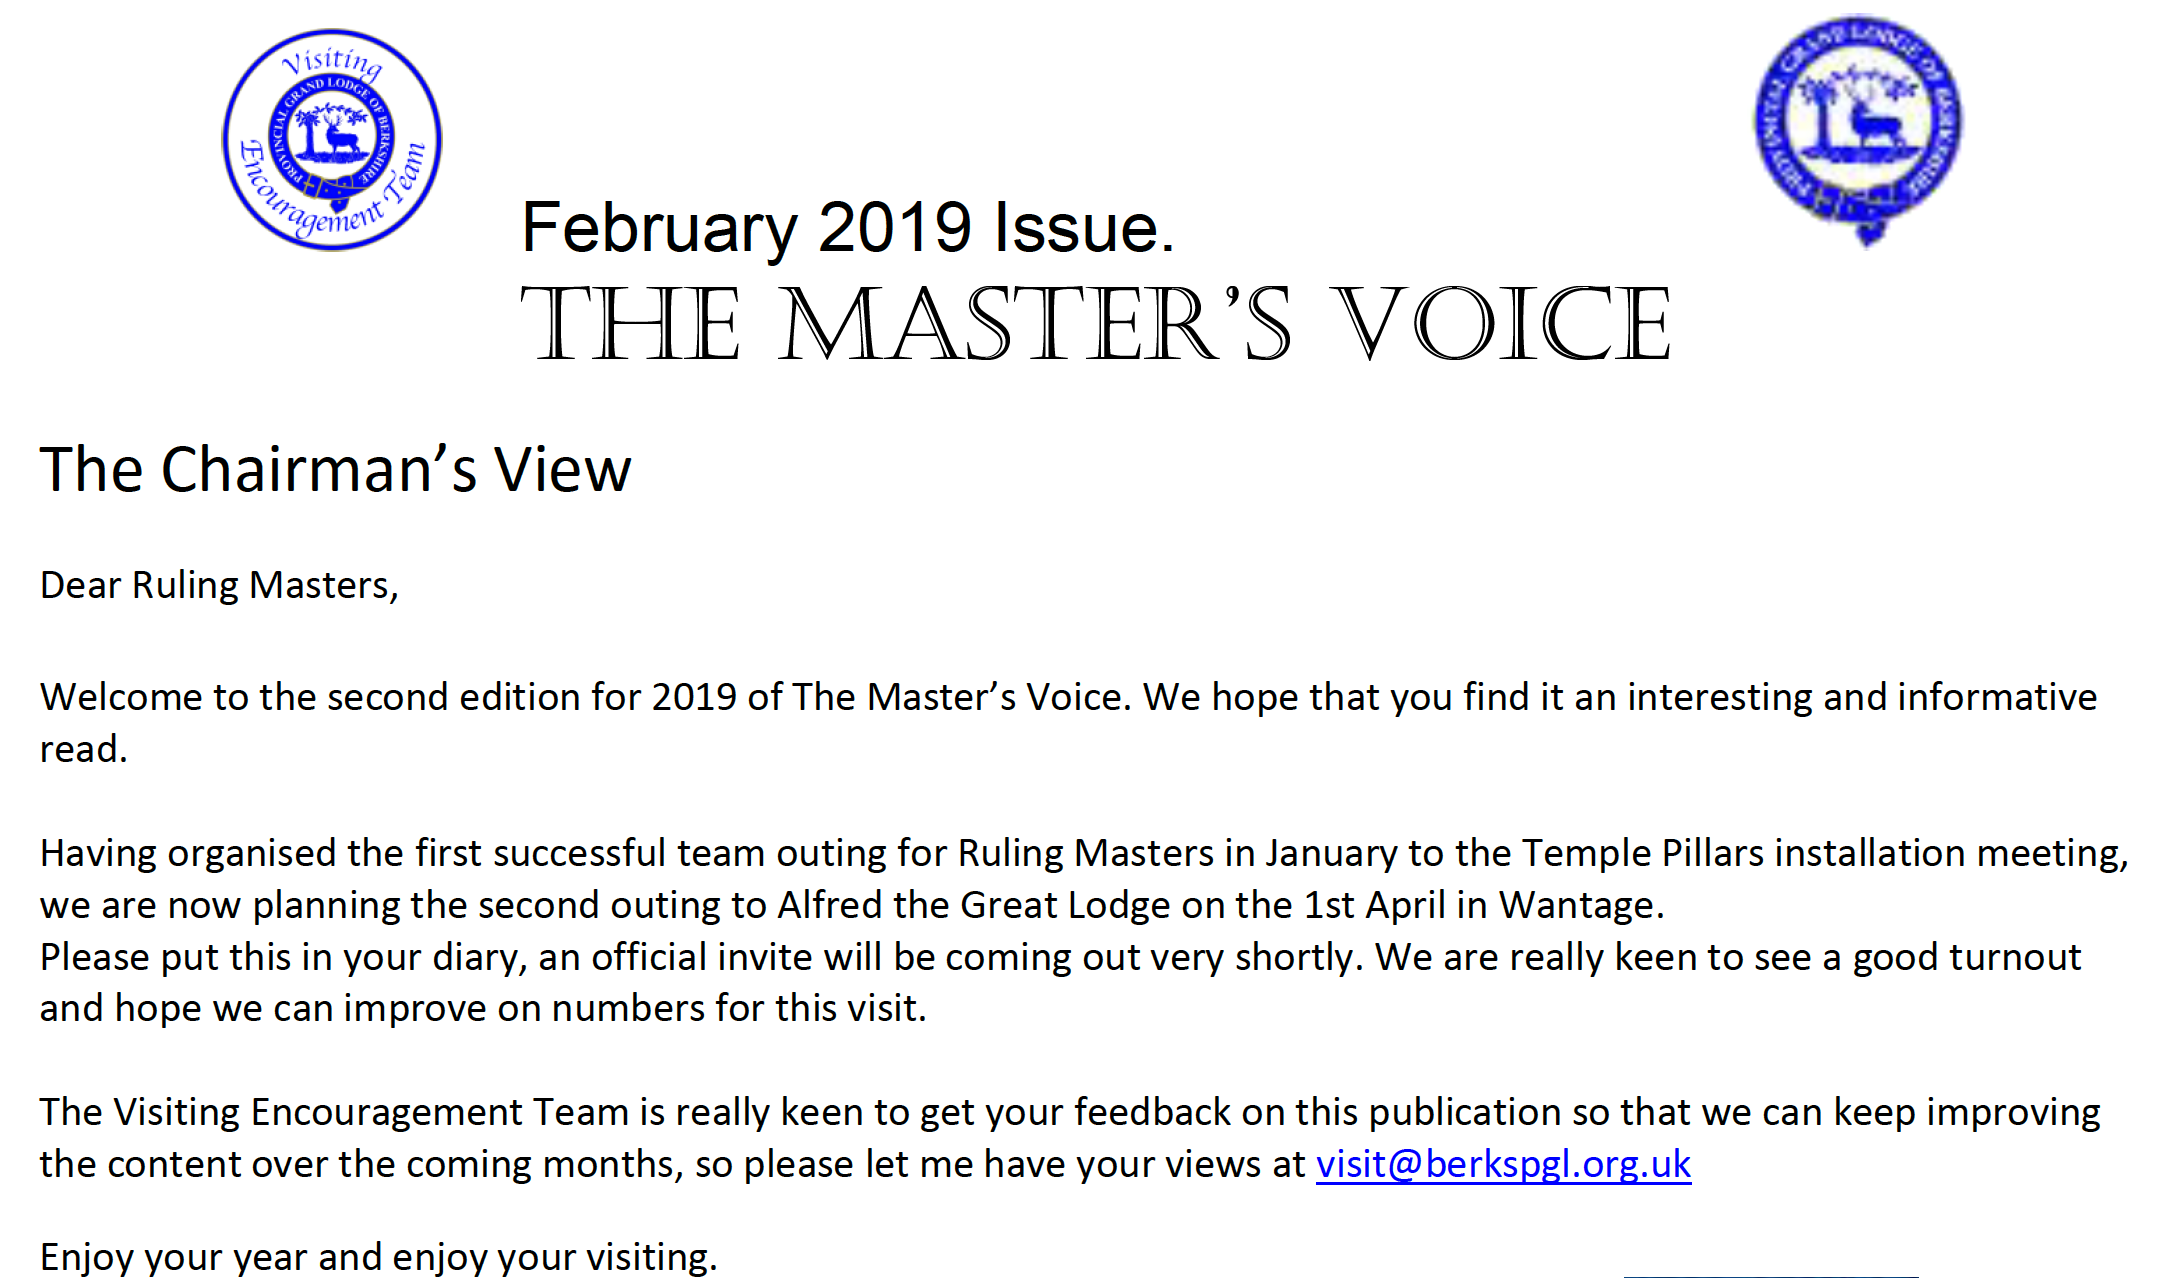 The Masters Voice February